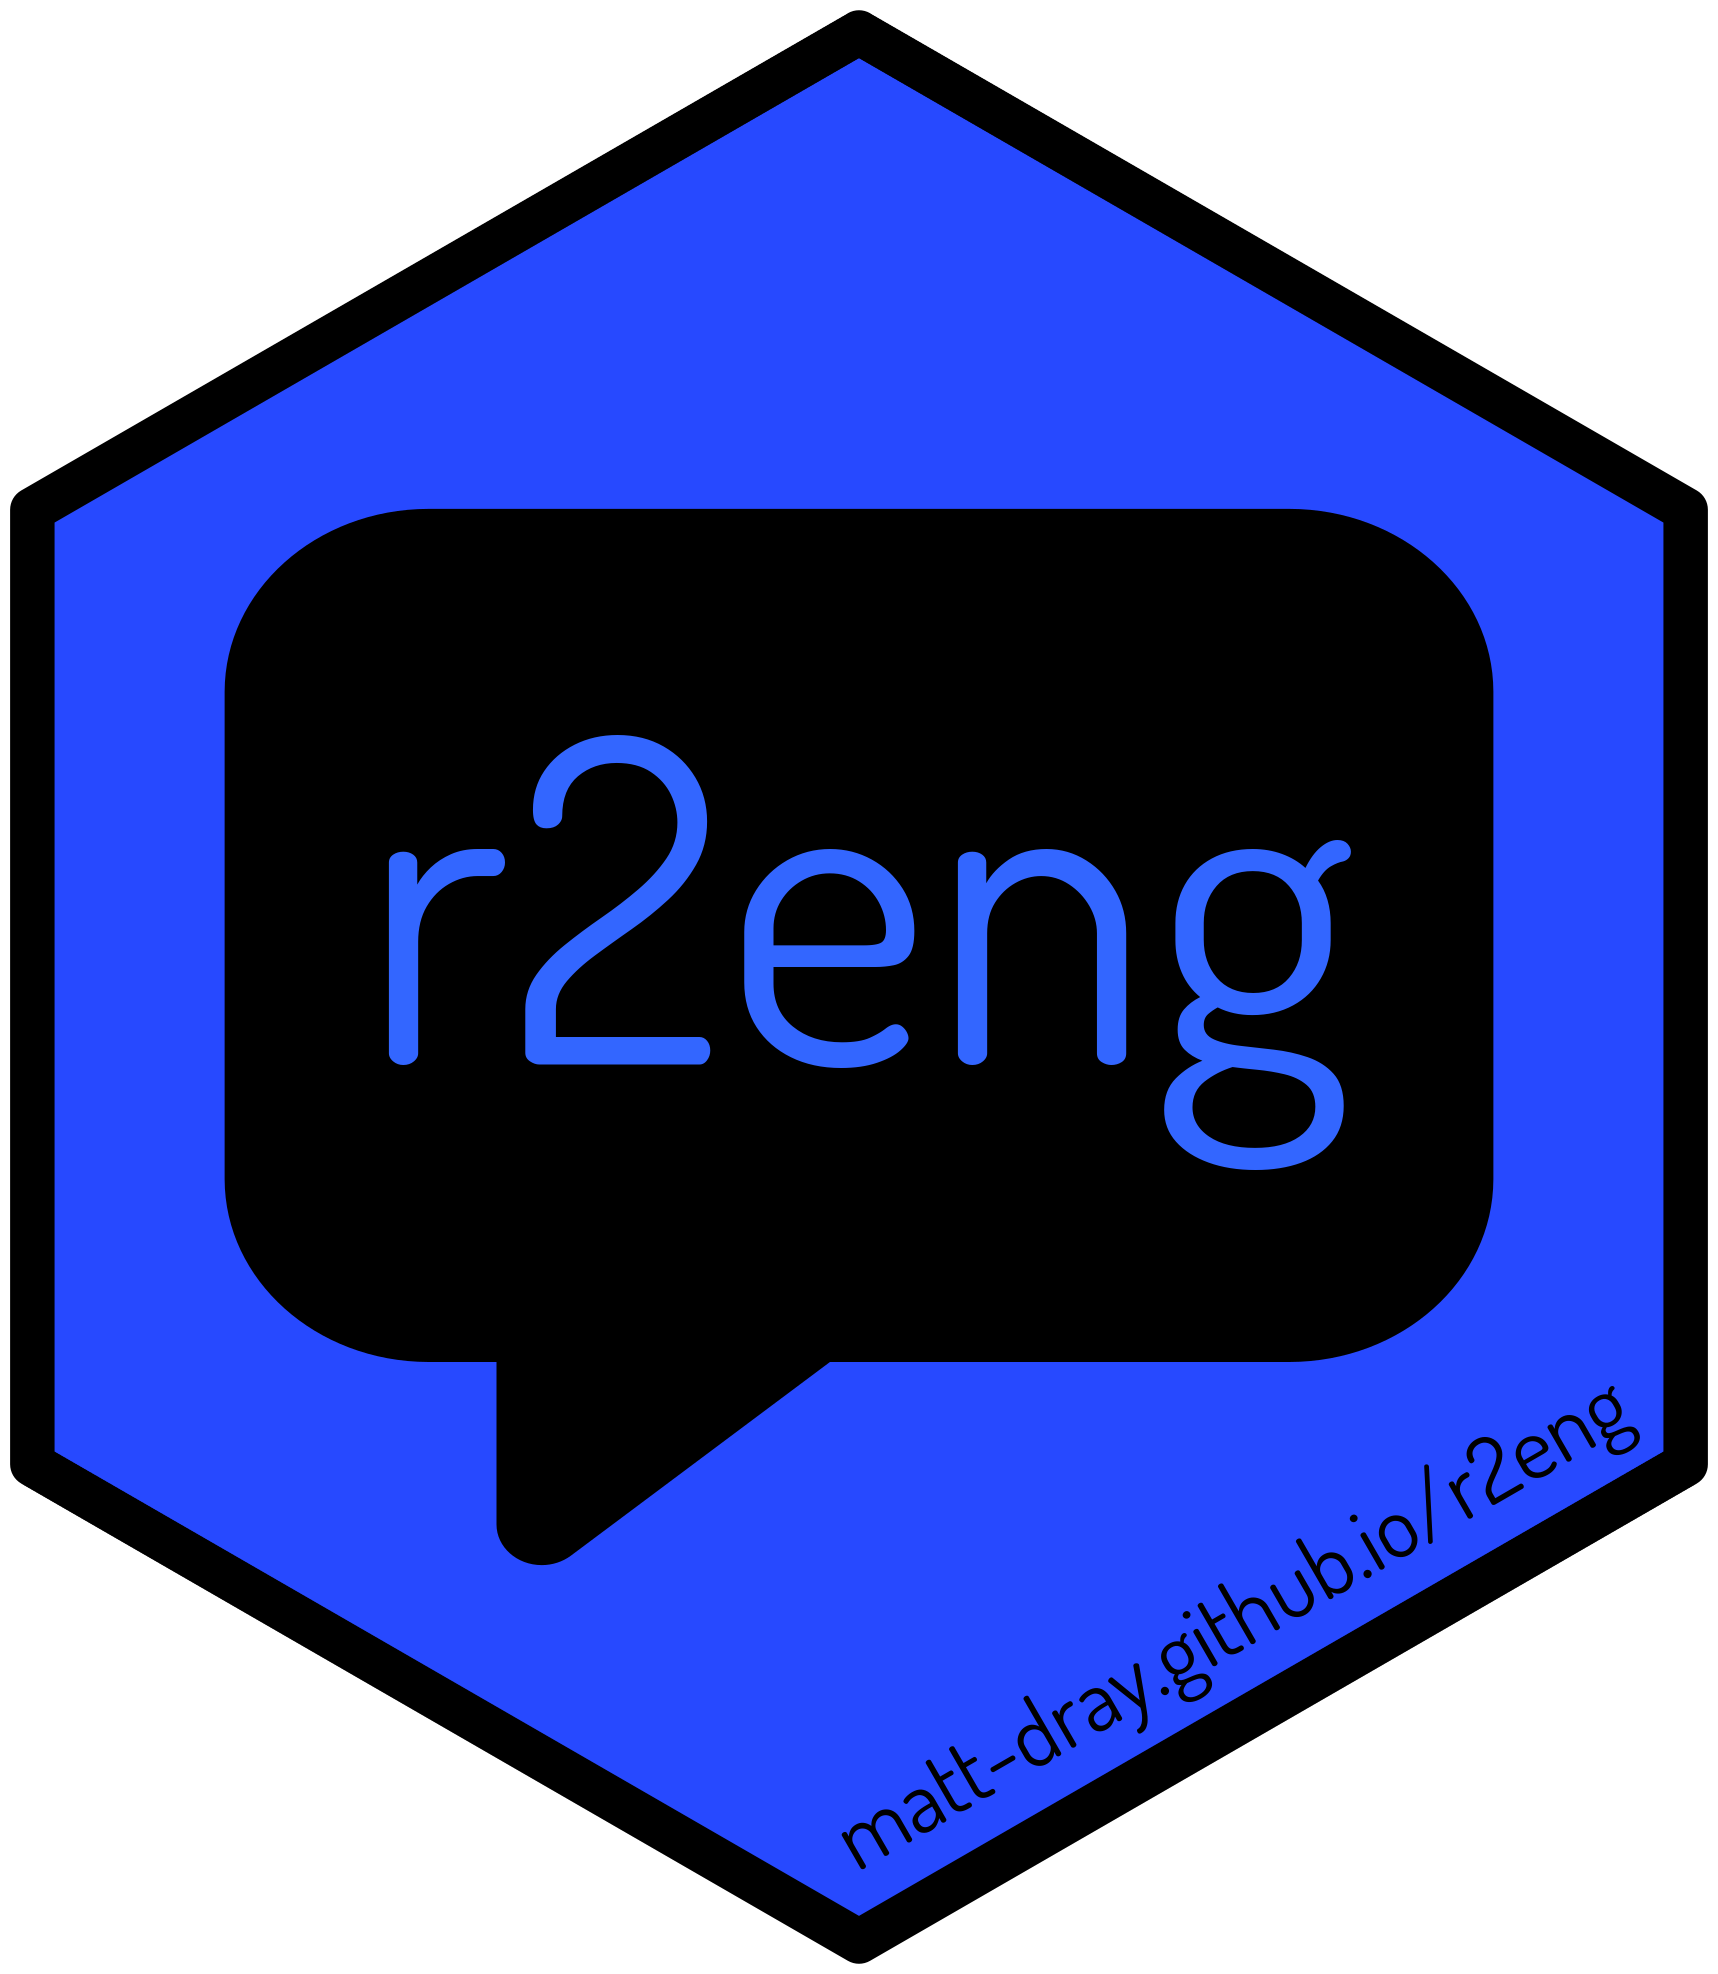 Hexagonal logo for the r2eng package showing the package name inside a speech bubble with the URL matt-dray.github.io/r2eng.